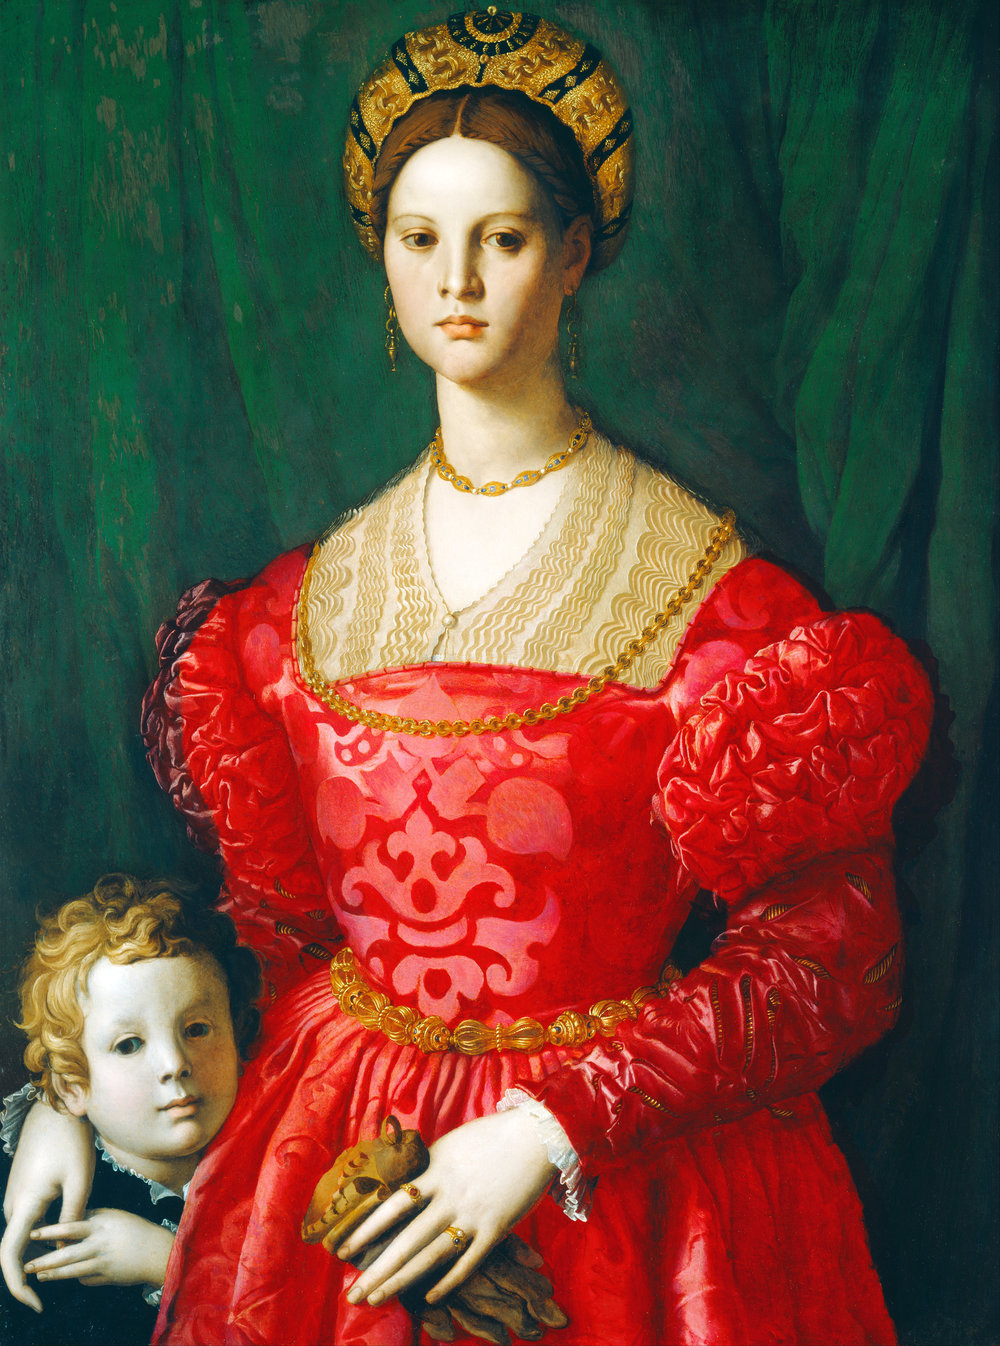 Agnolo_Bronzino_-_A_Young_Woman_and_Her_Little_Boy_-_Google_Art_Project.jpg